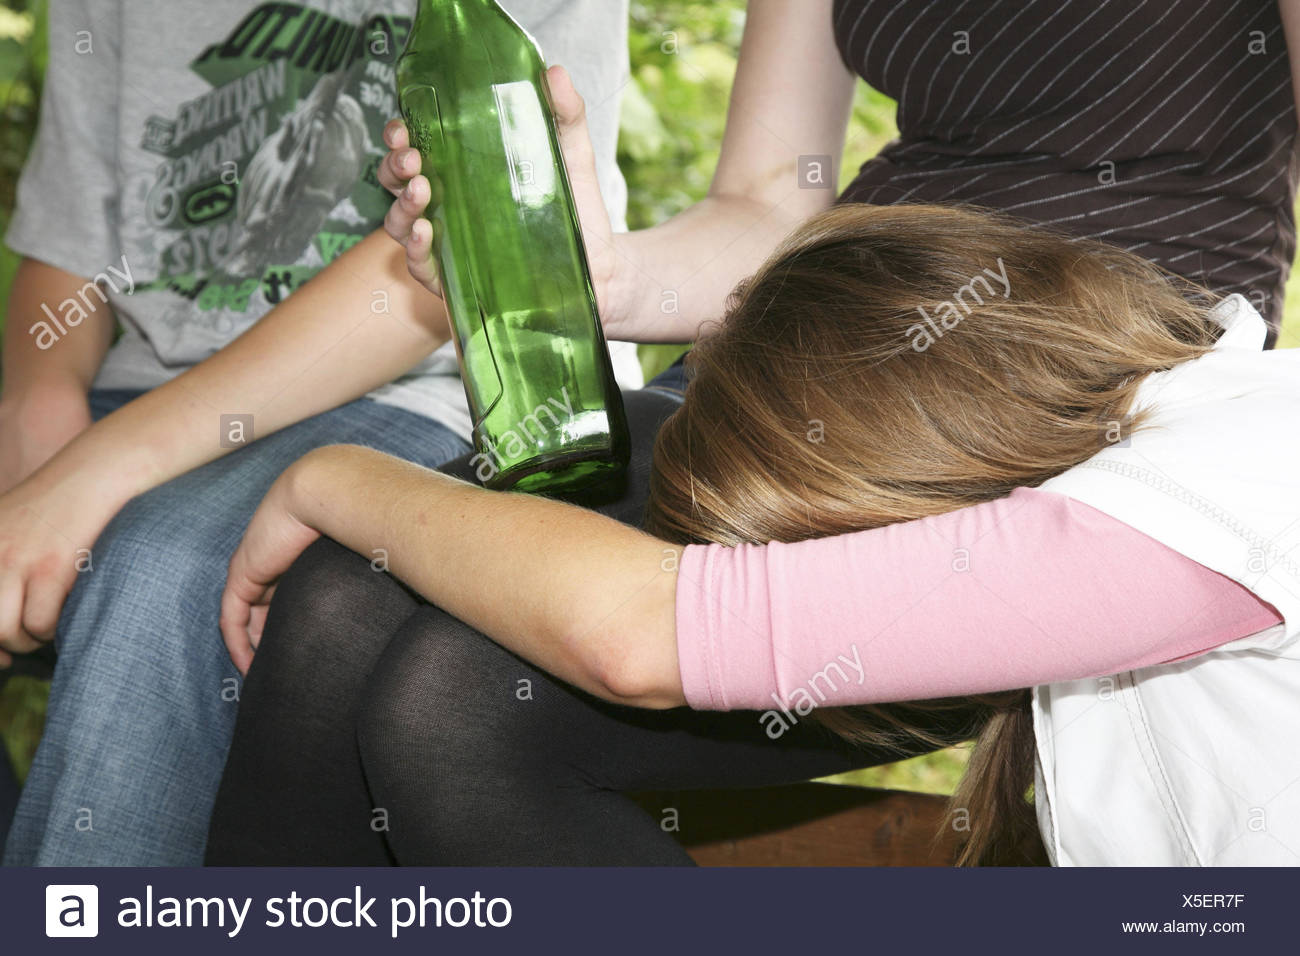 Drunk girl abused at party opinion